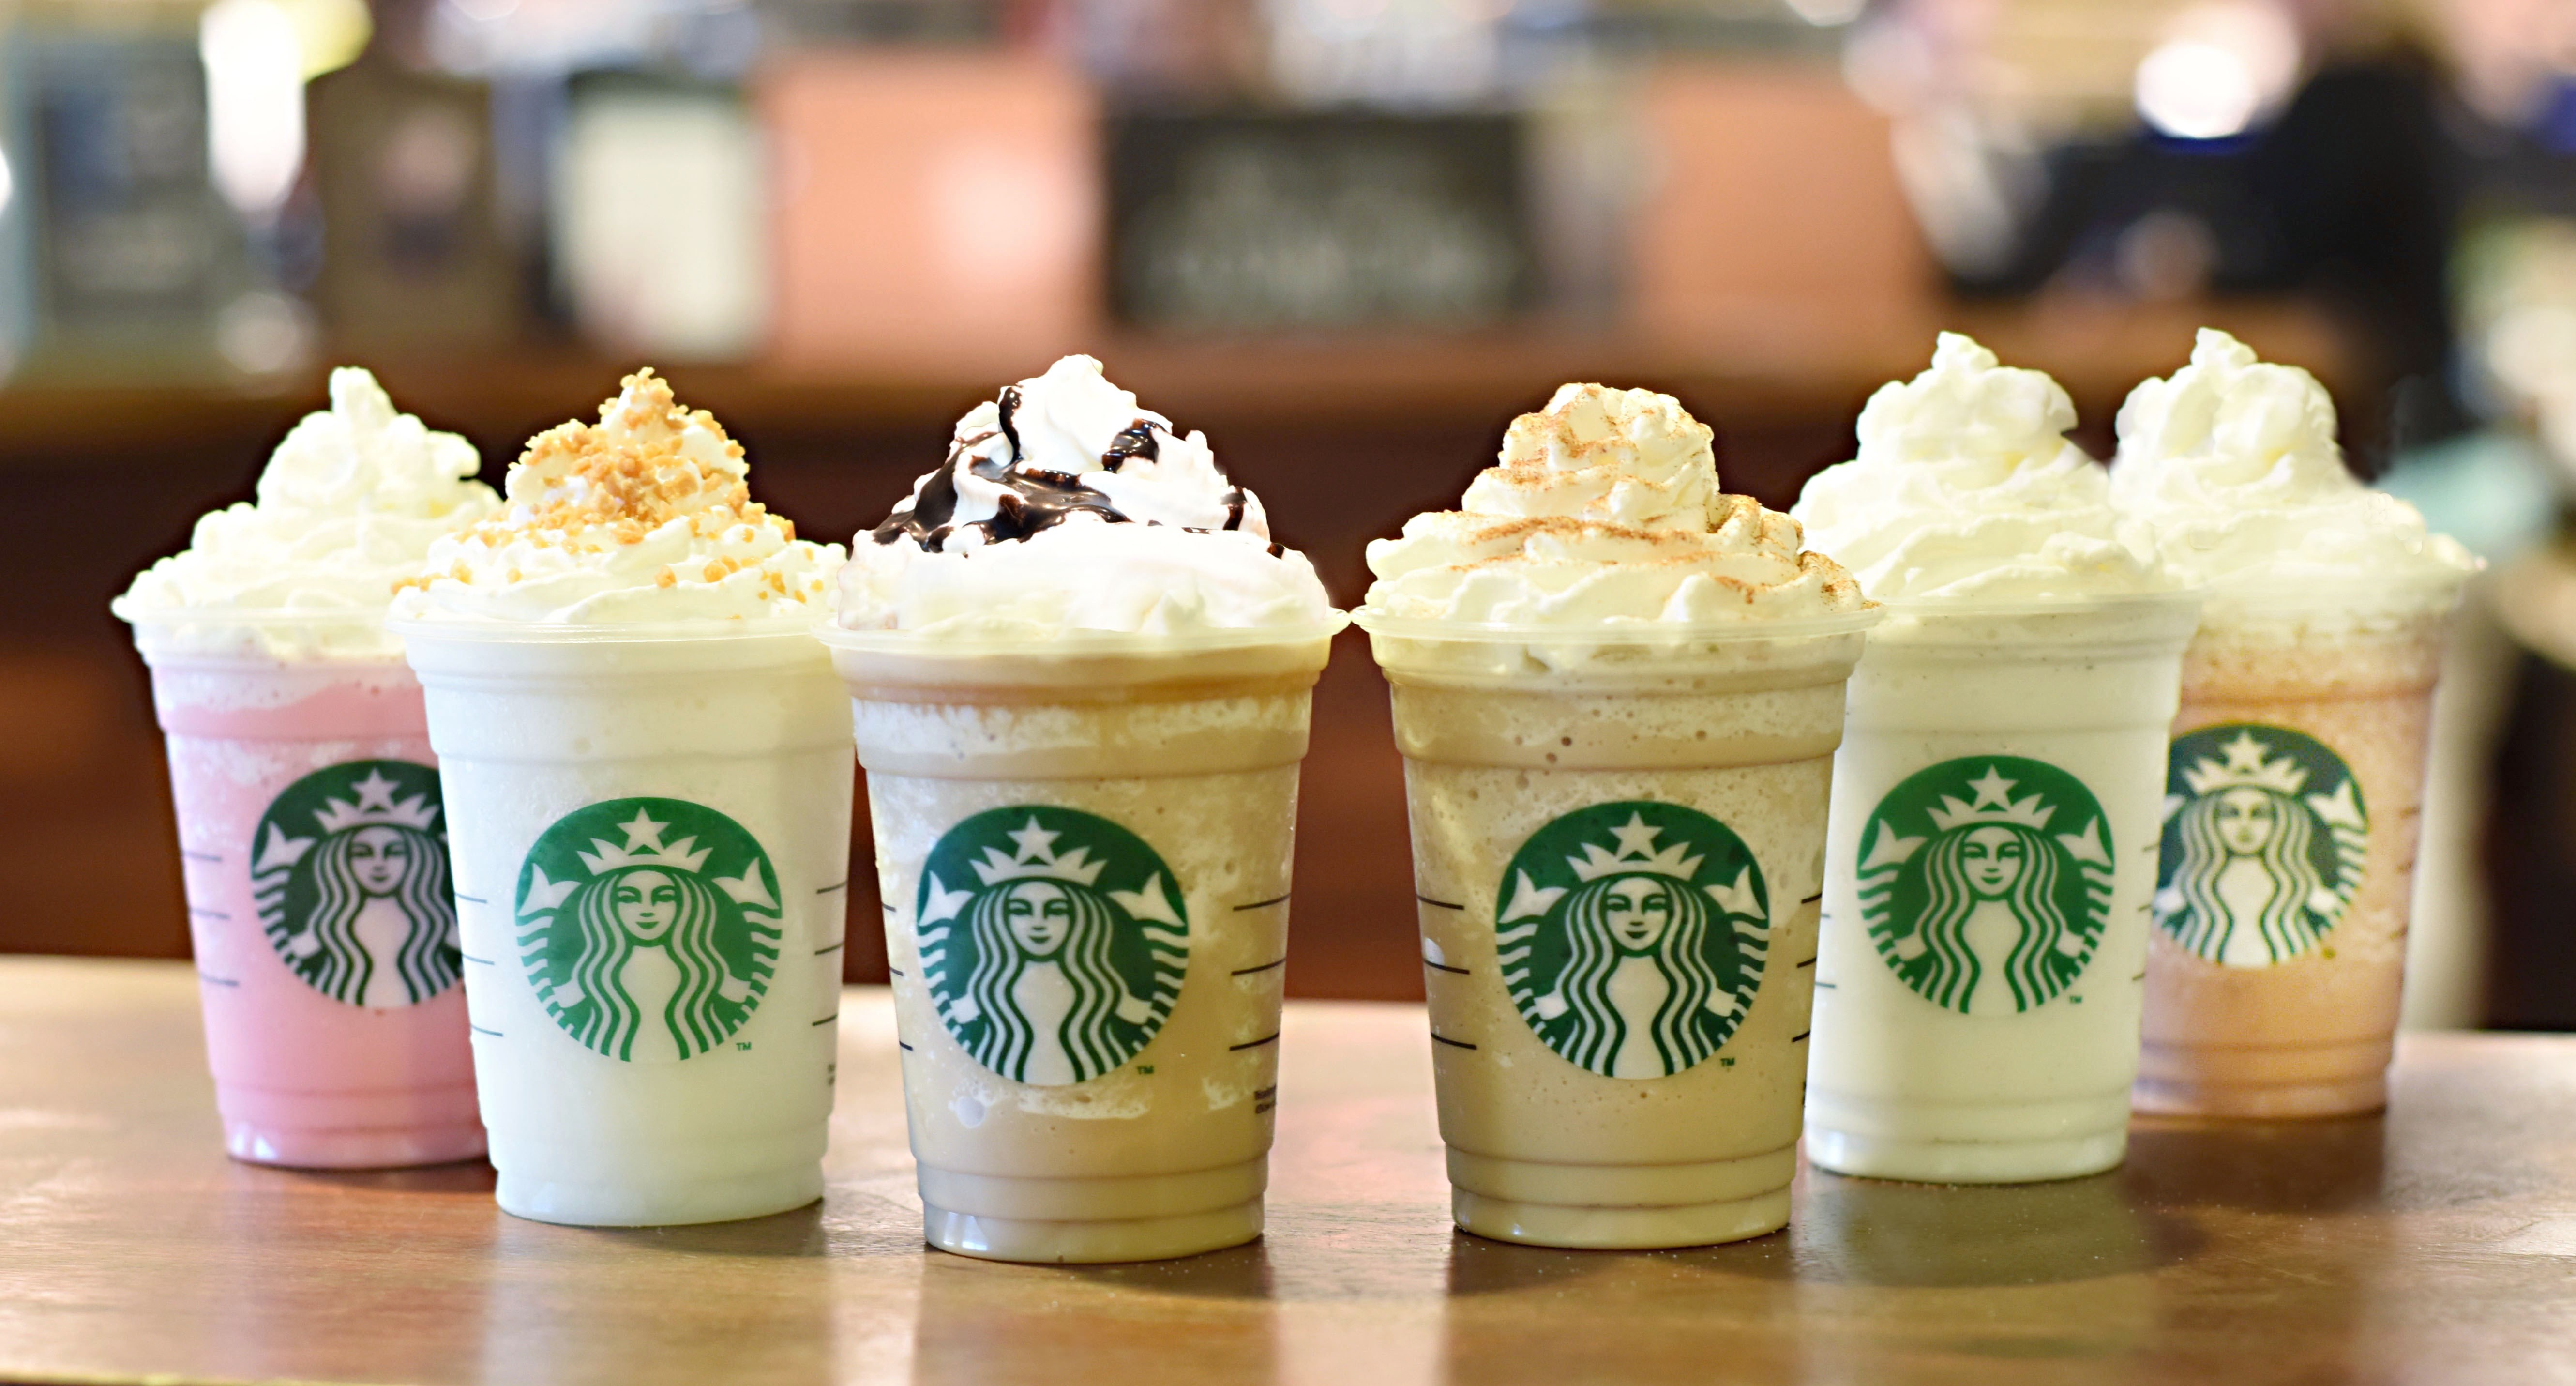 Starbucks is offering six new Frappuccino blended beverages to celebrate the drink's 20th anniversary.